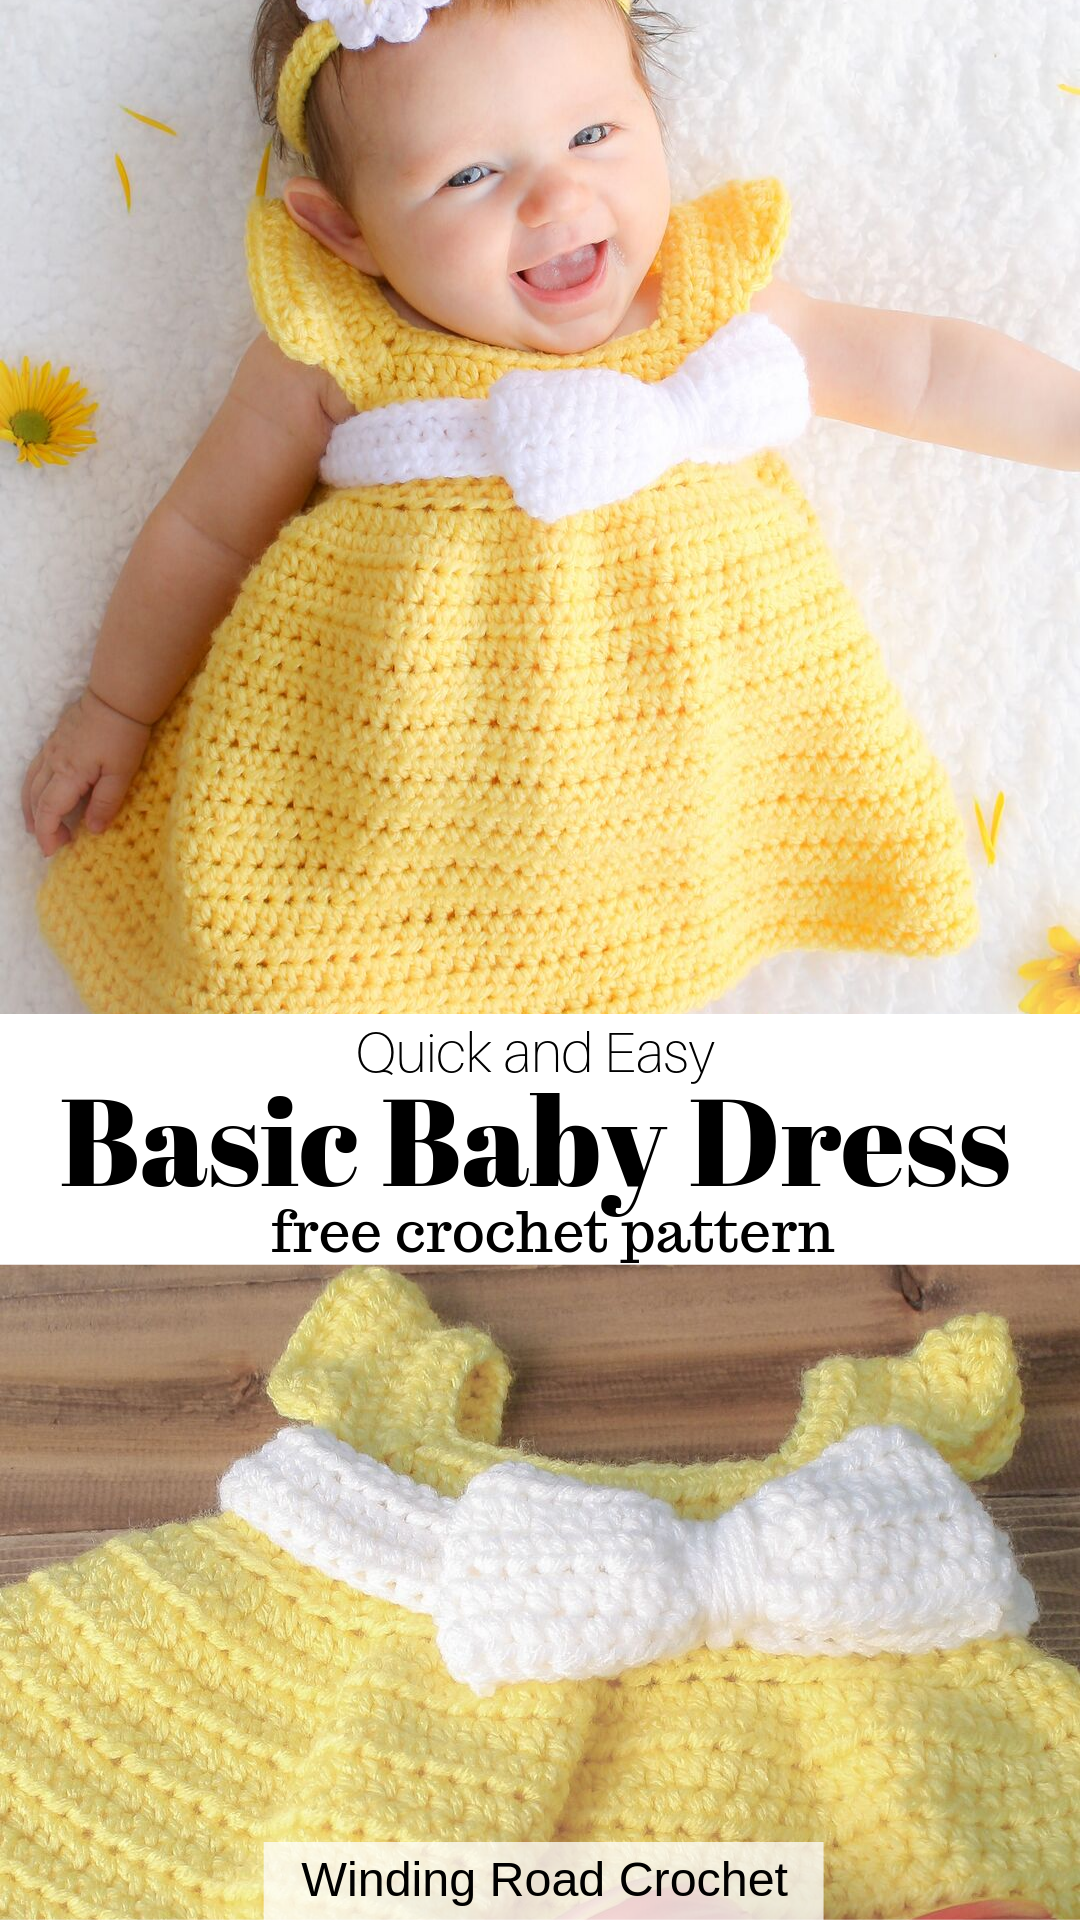 Simply Spring Baby Dress: 6 - 18 Months #crochetbabycardigan